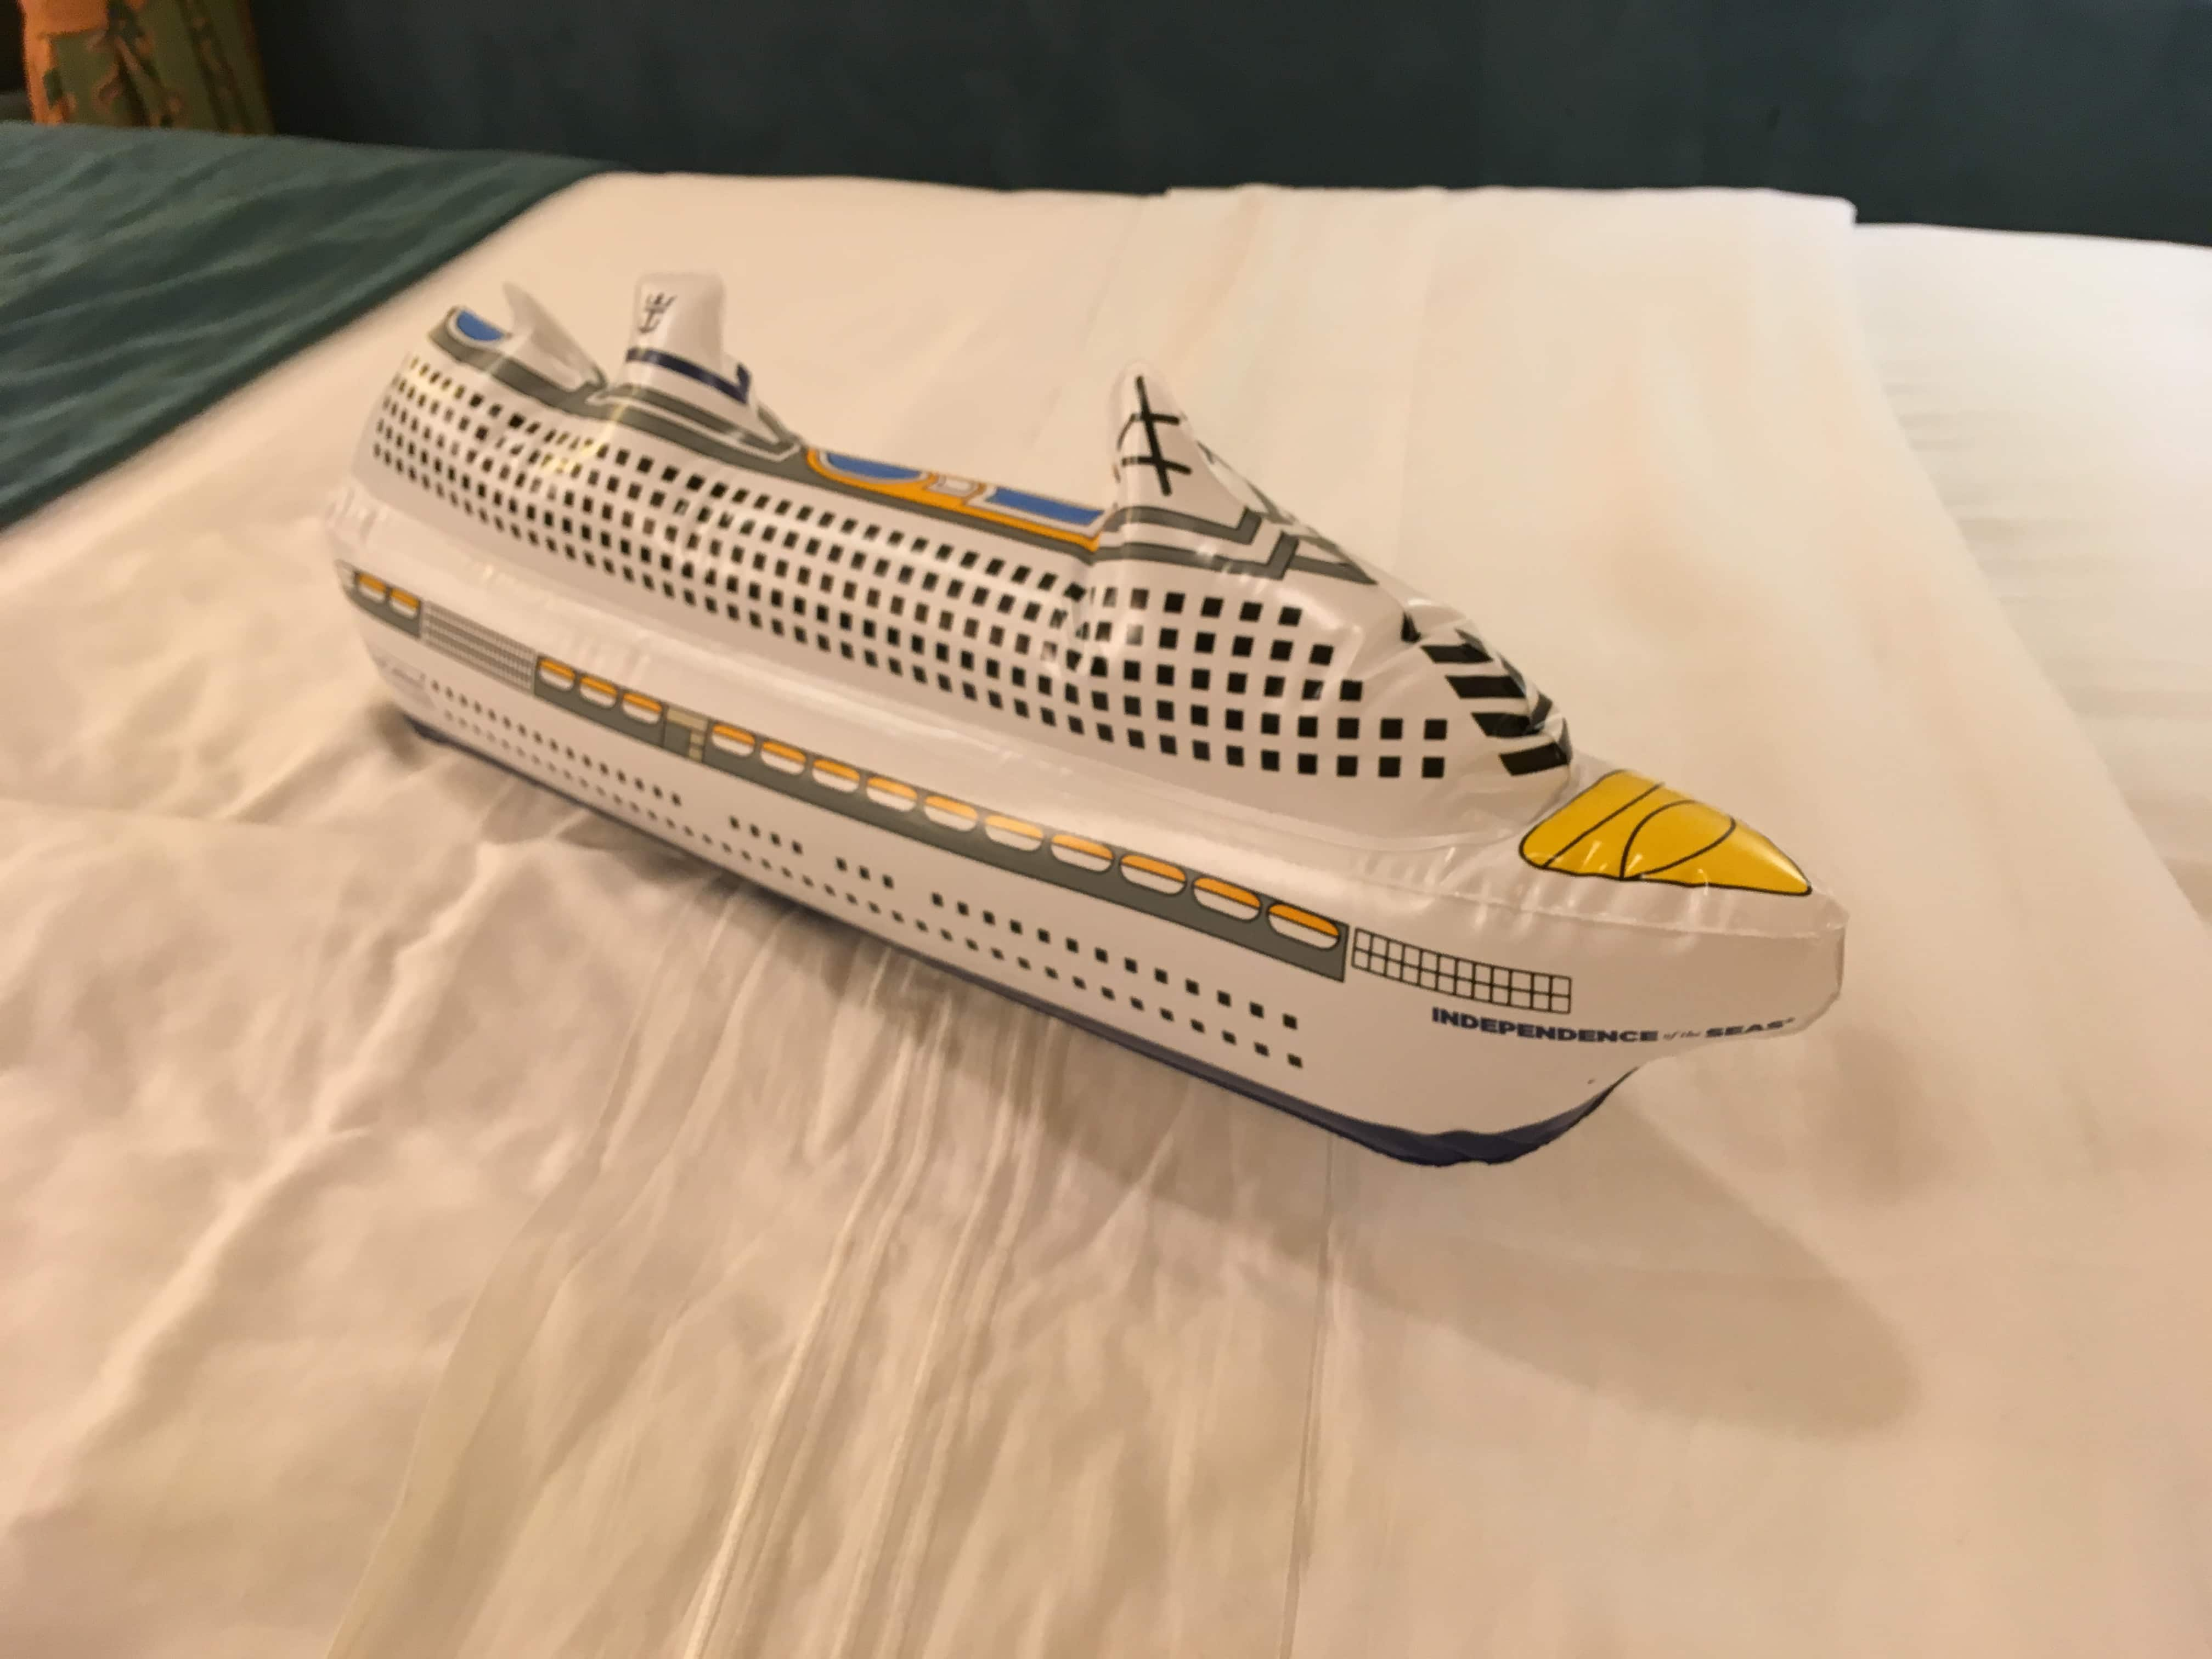 royal caribbean independence of the seas inflatable ship